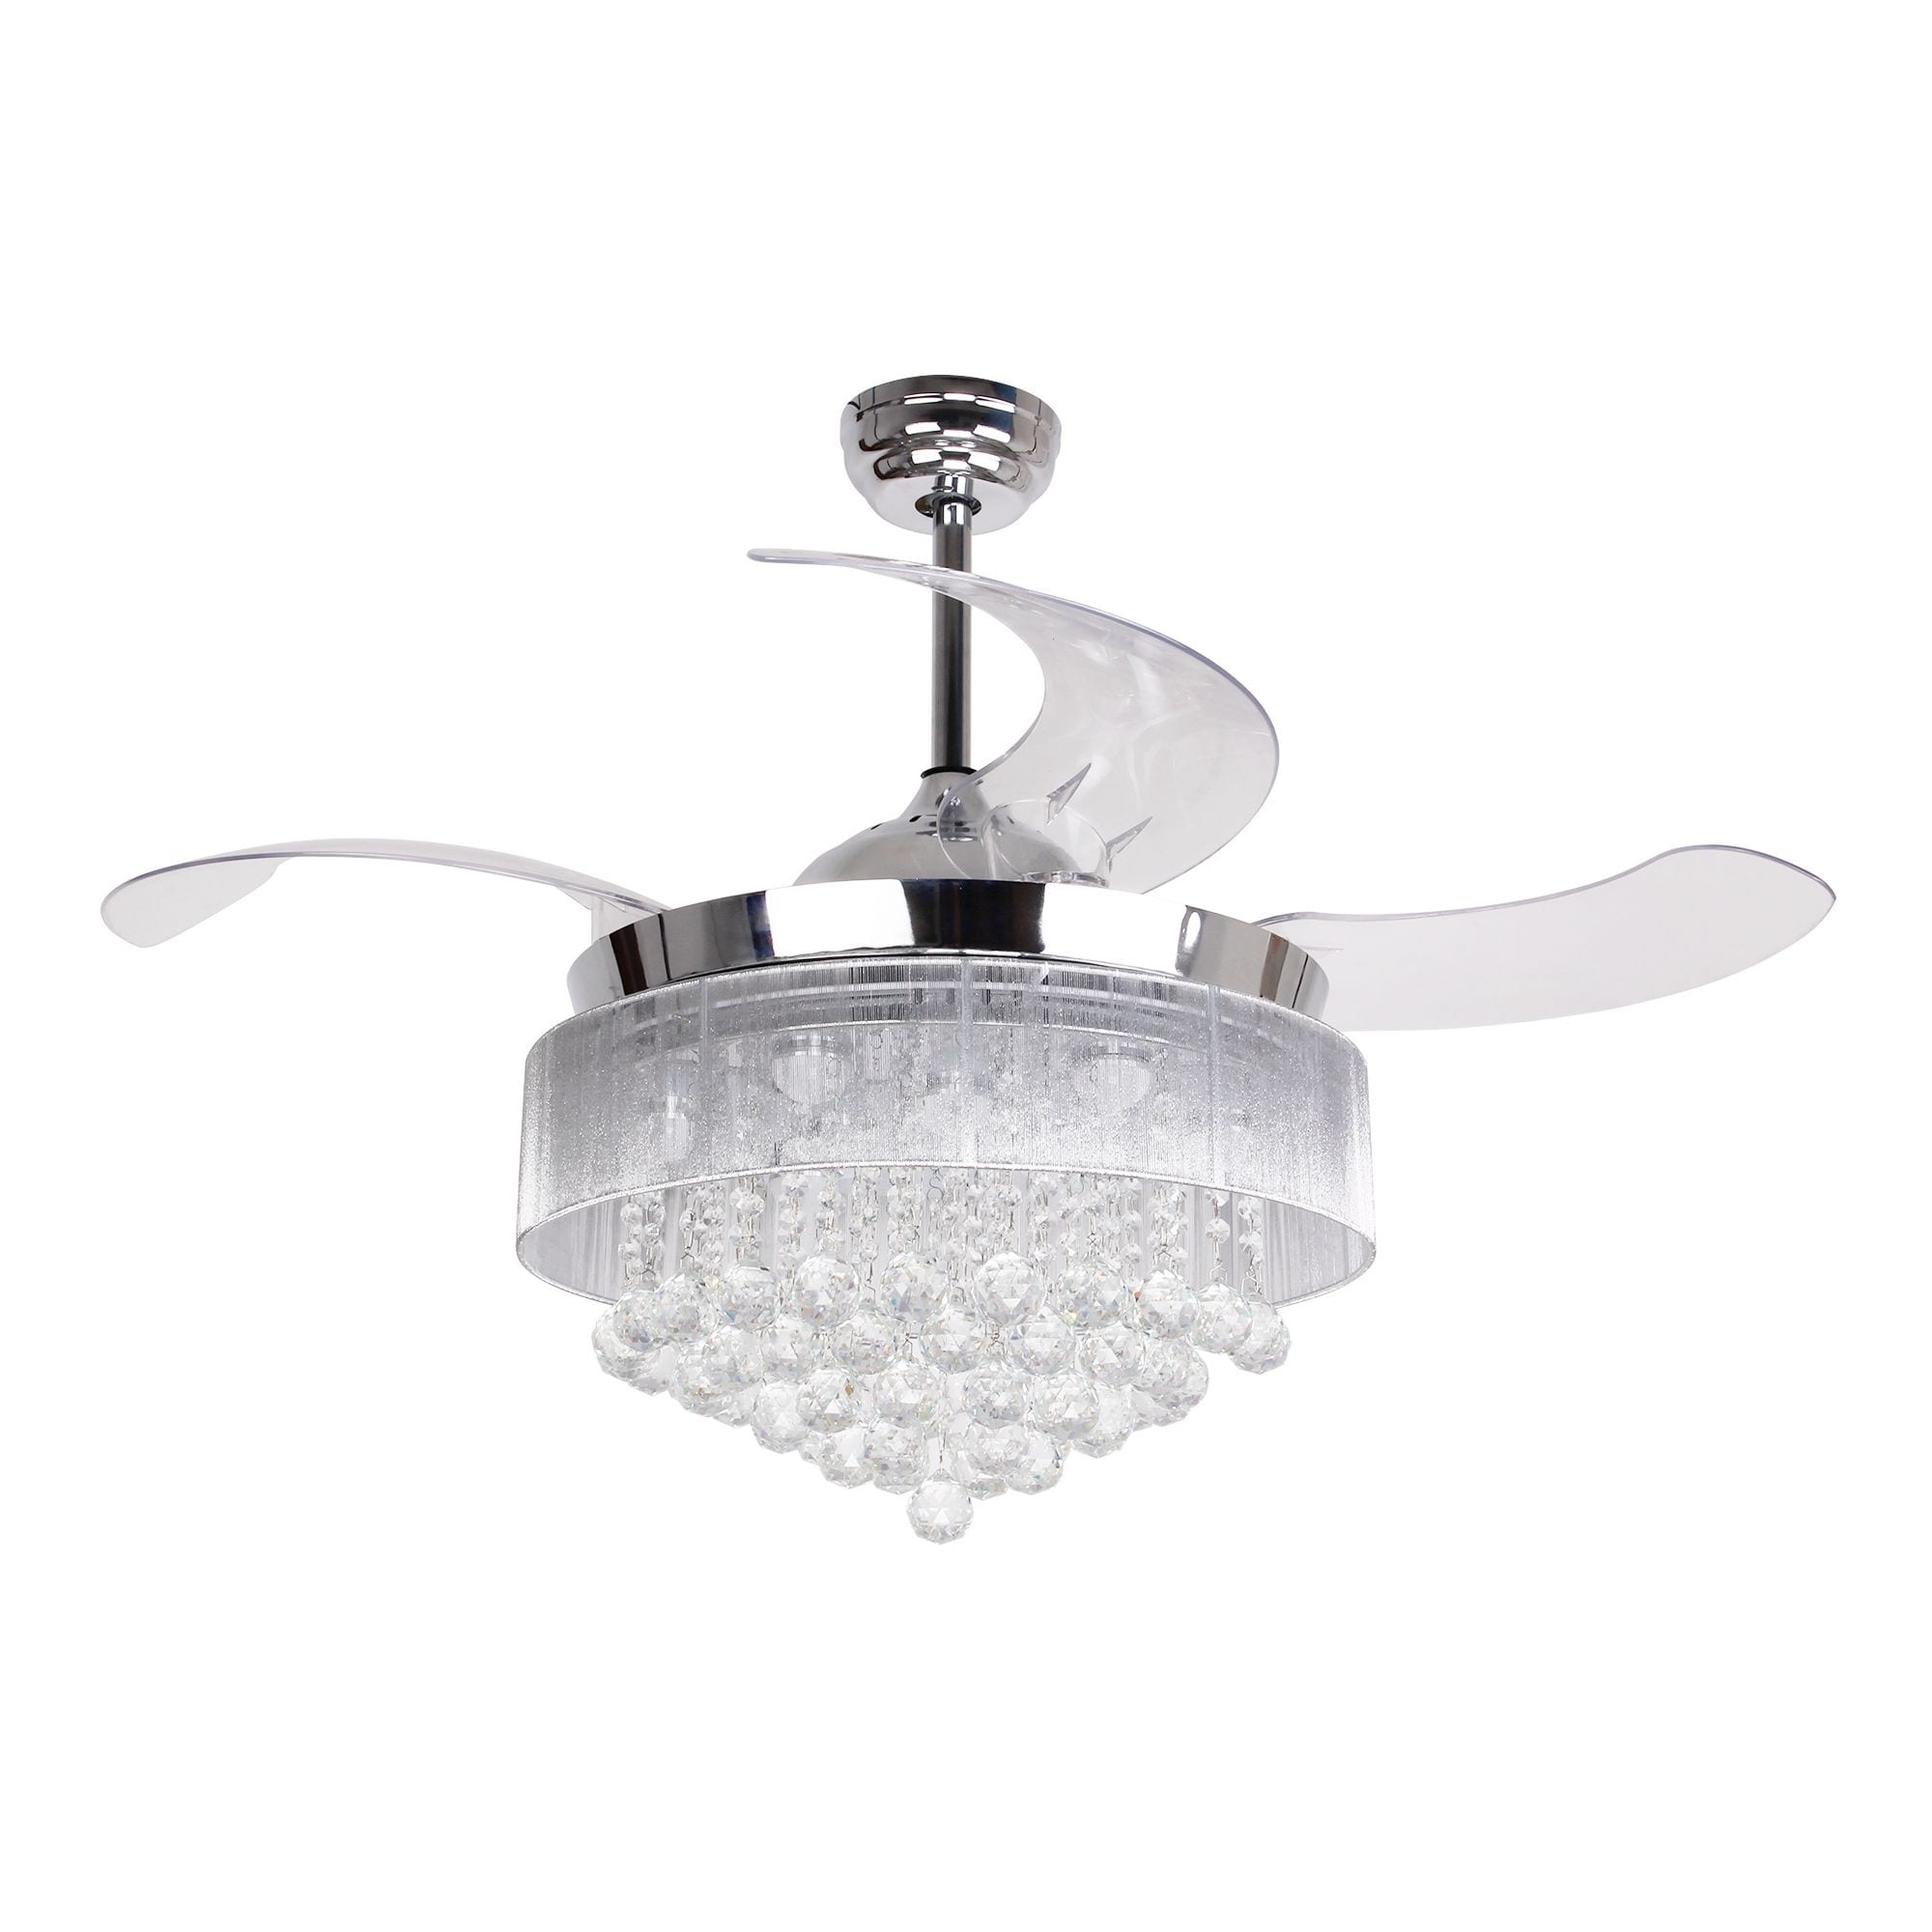 Shop 425 foldable blades led ceiling fan with crystal chrome shop 425 foldable blades led ceiling fan with crystal chrome free shipping today overstock 19404011 aloadofball Image collections